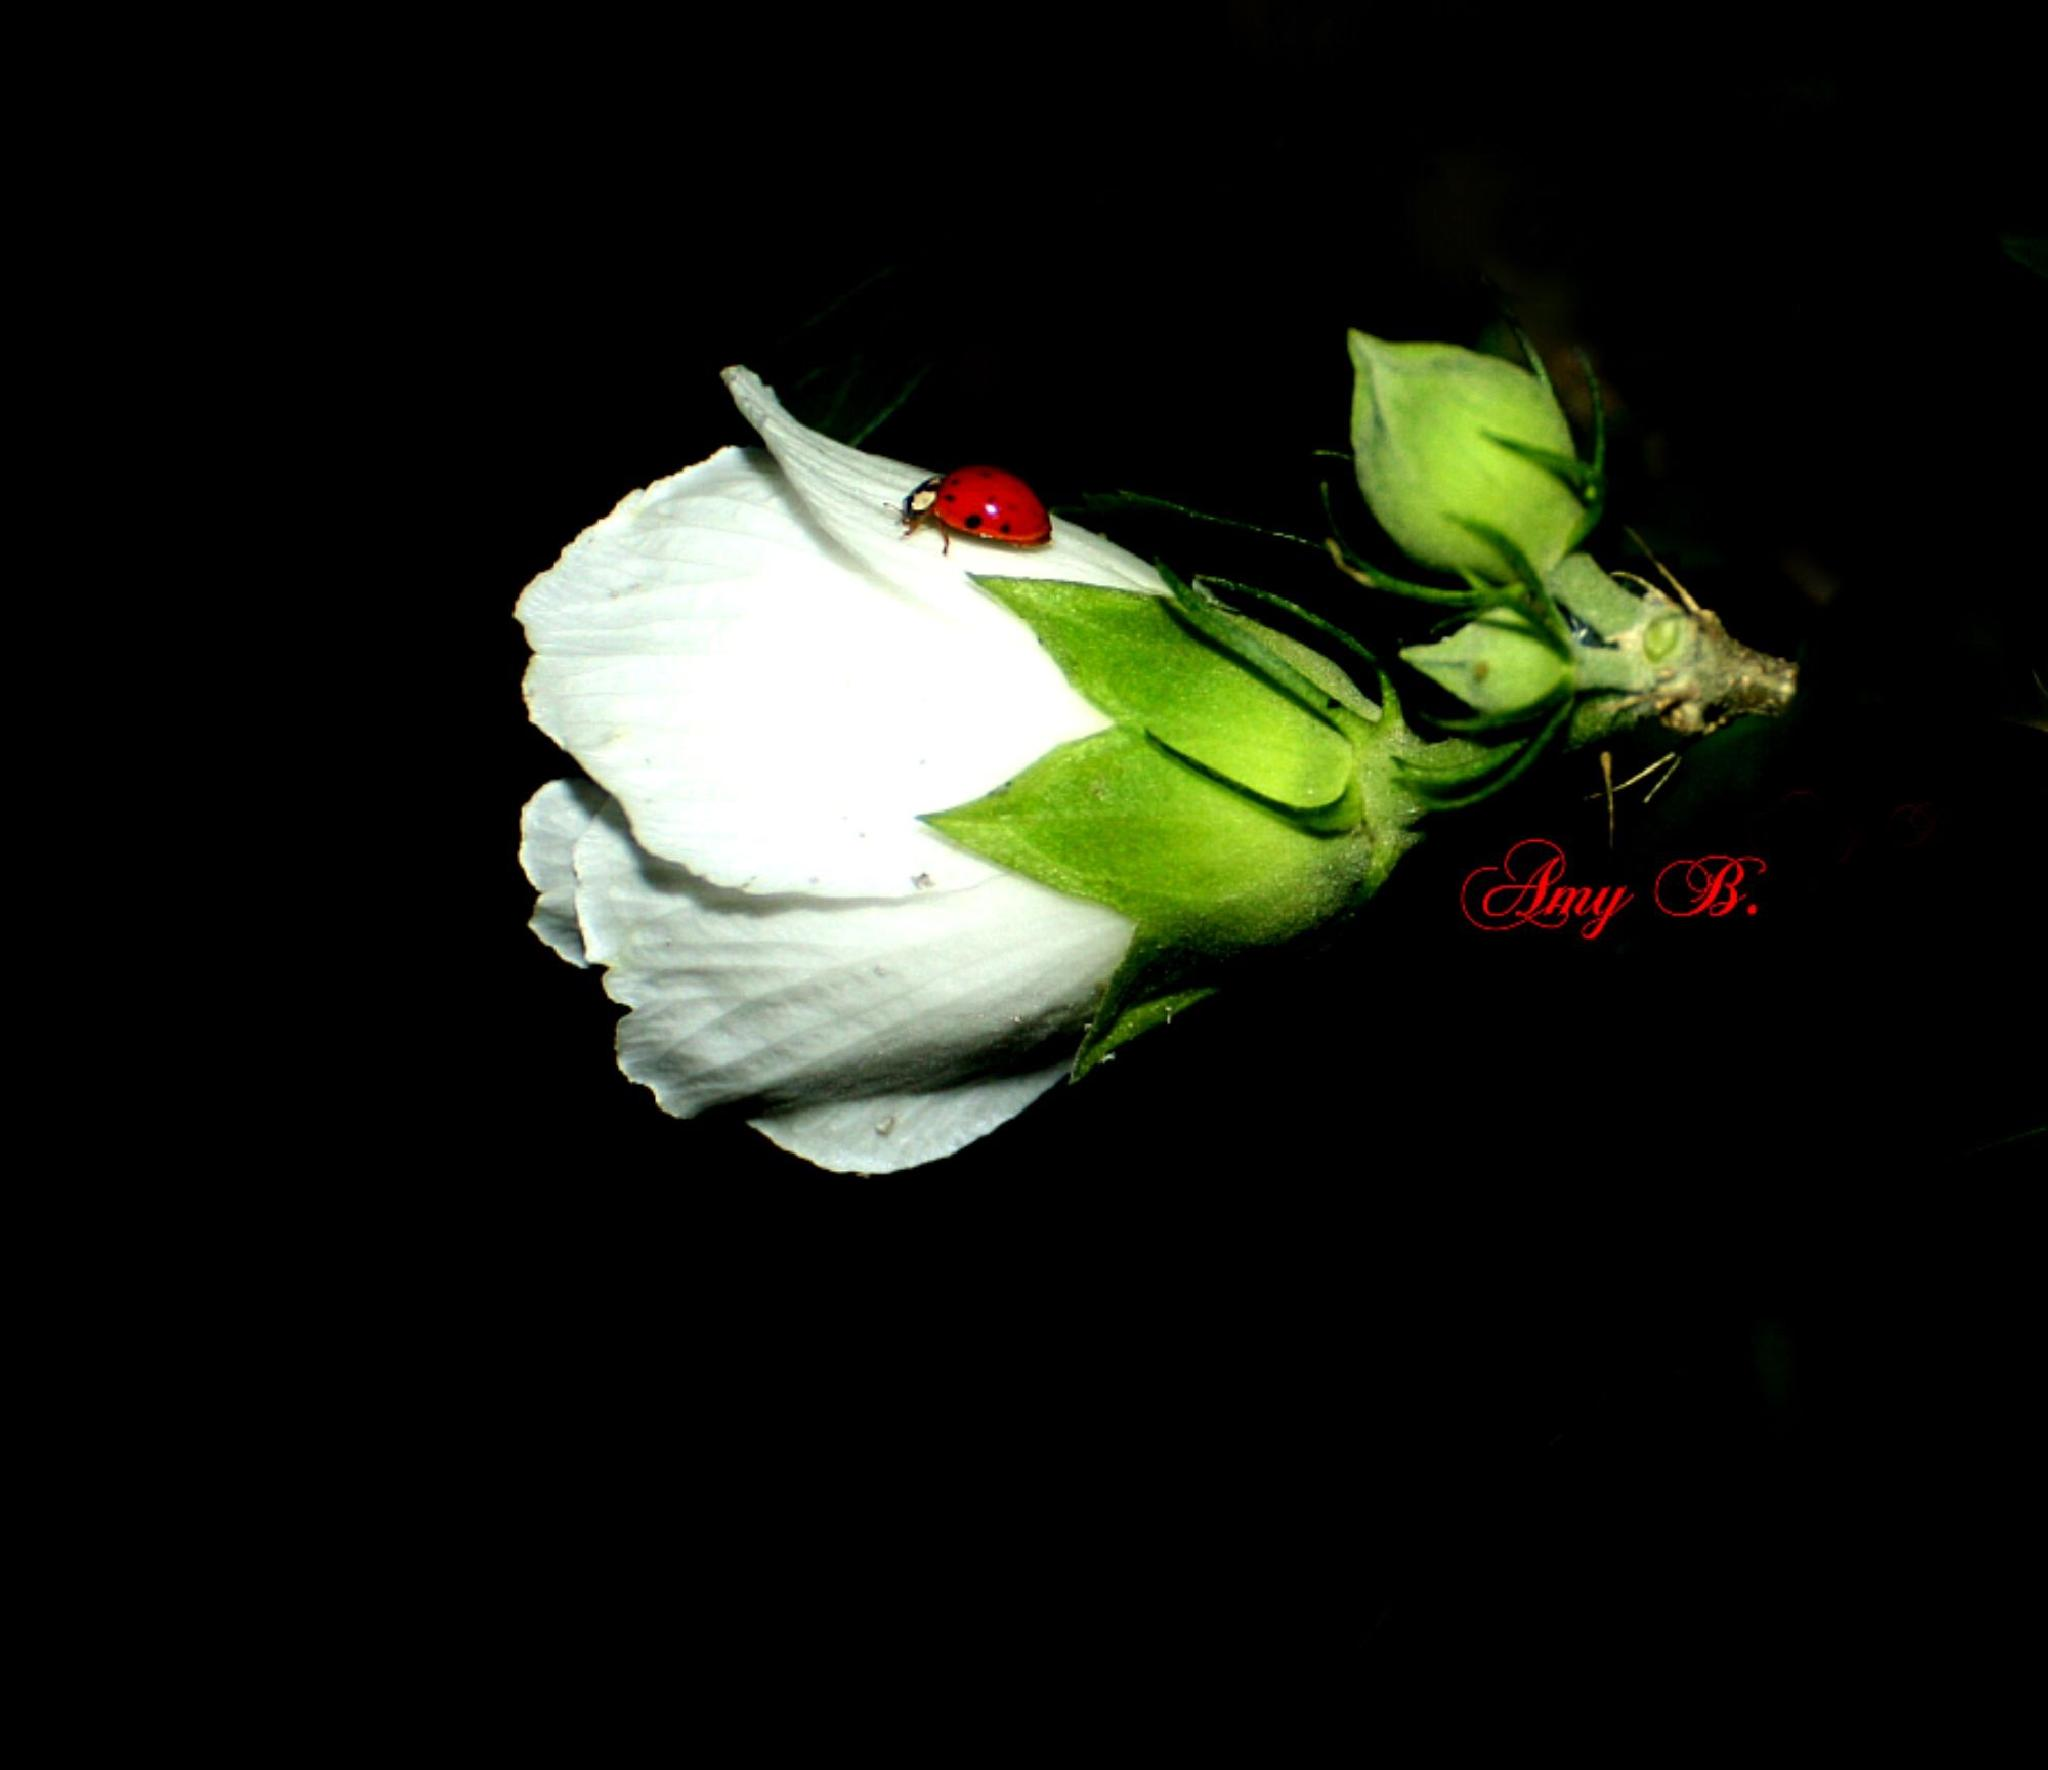 White flower at night with lady bug by amy.conger.9